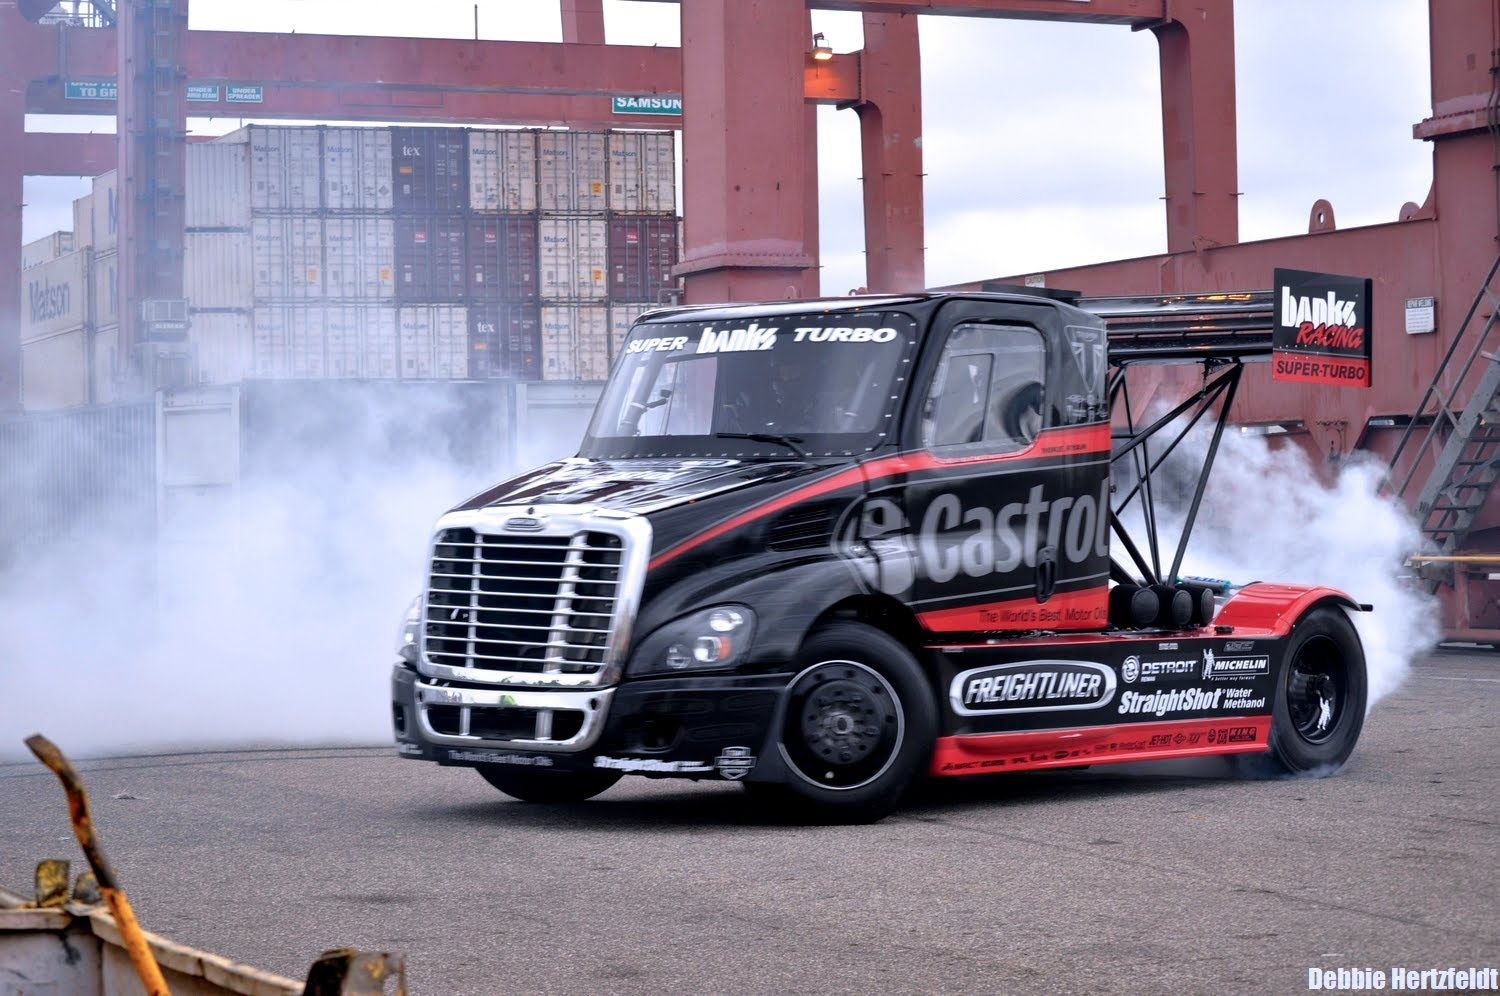 A 2,800 Horsepower Semi Truck Driver Does Wild Stunts and Drifts ...